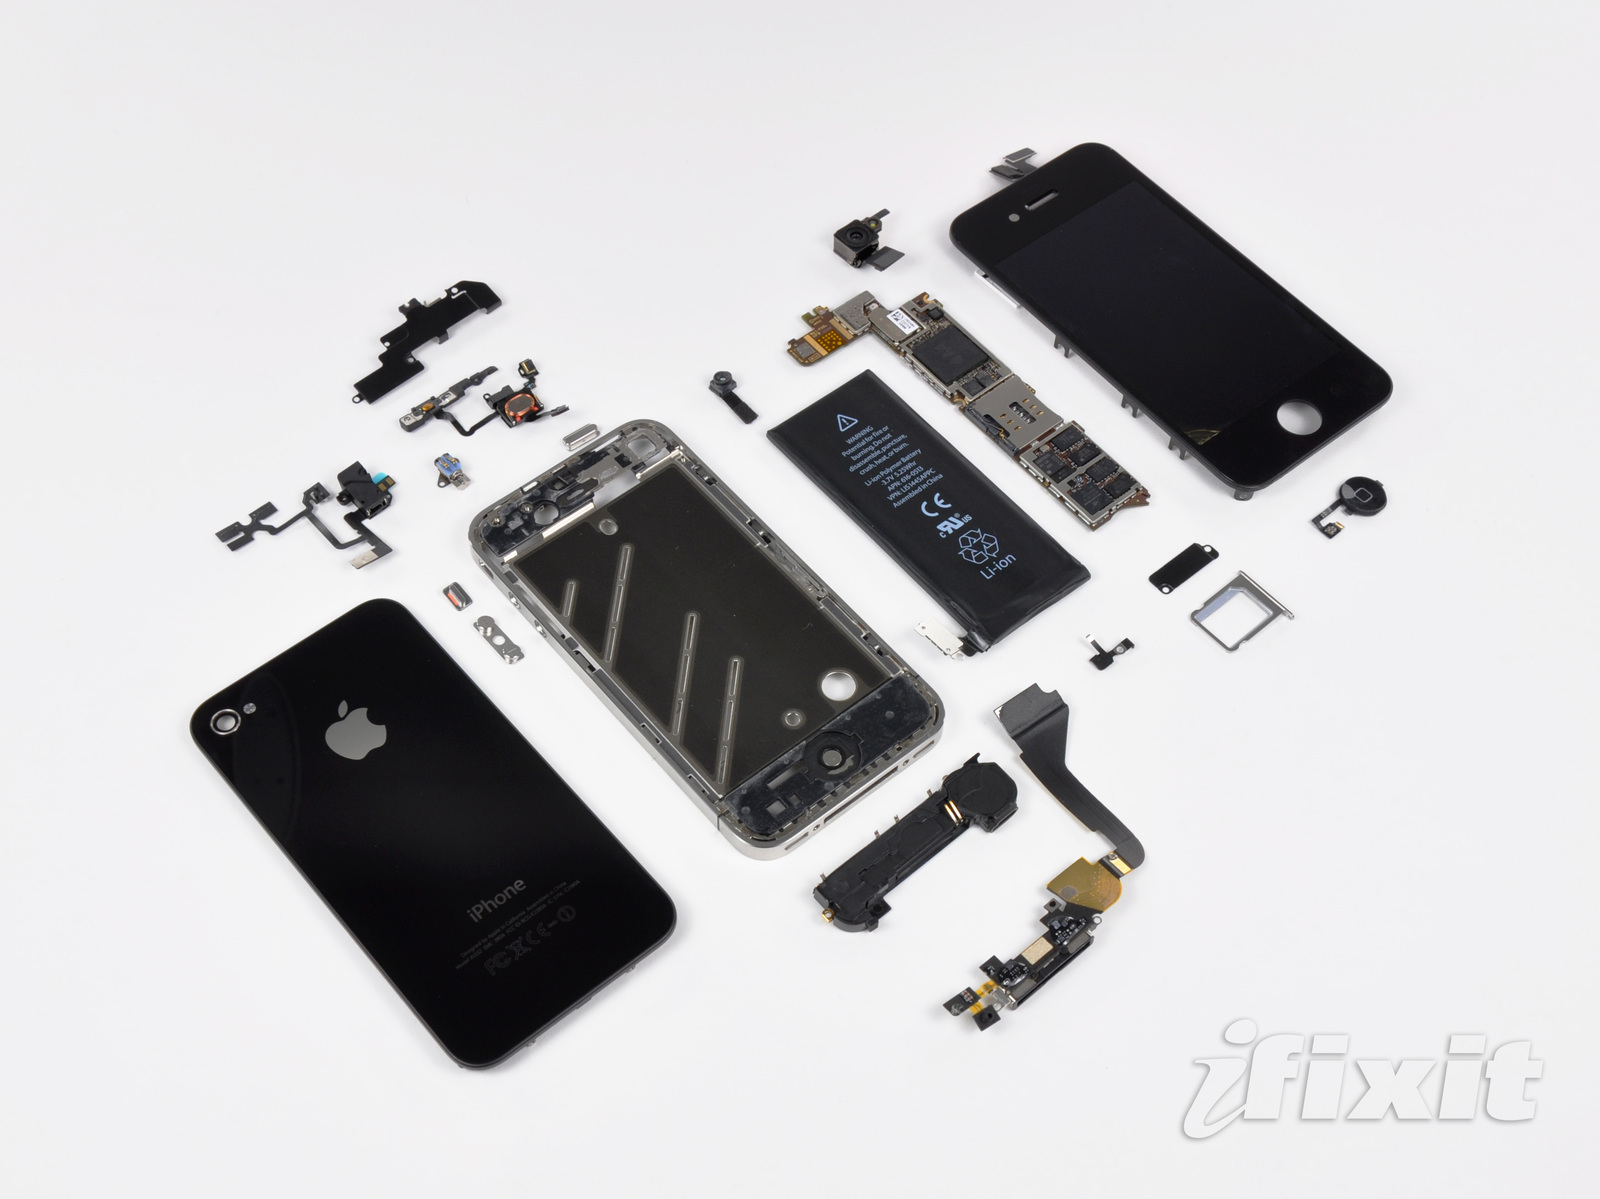 In-Depth iPhone 4 Teardown!